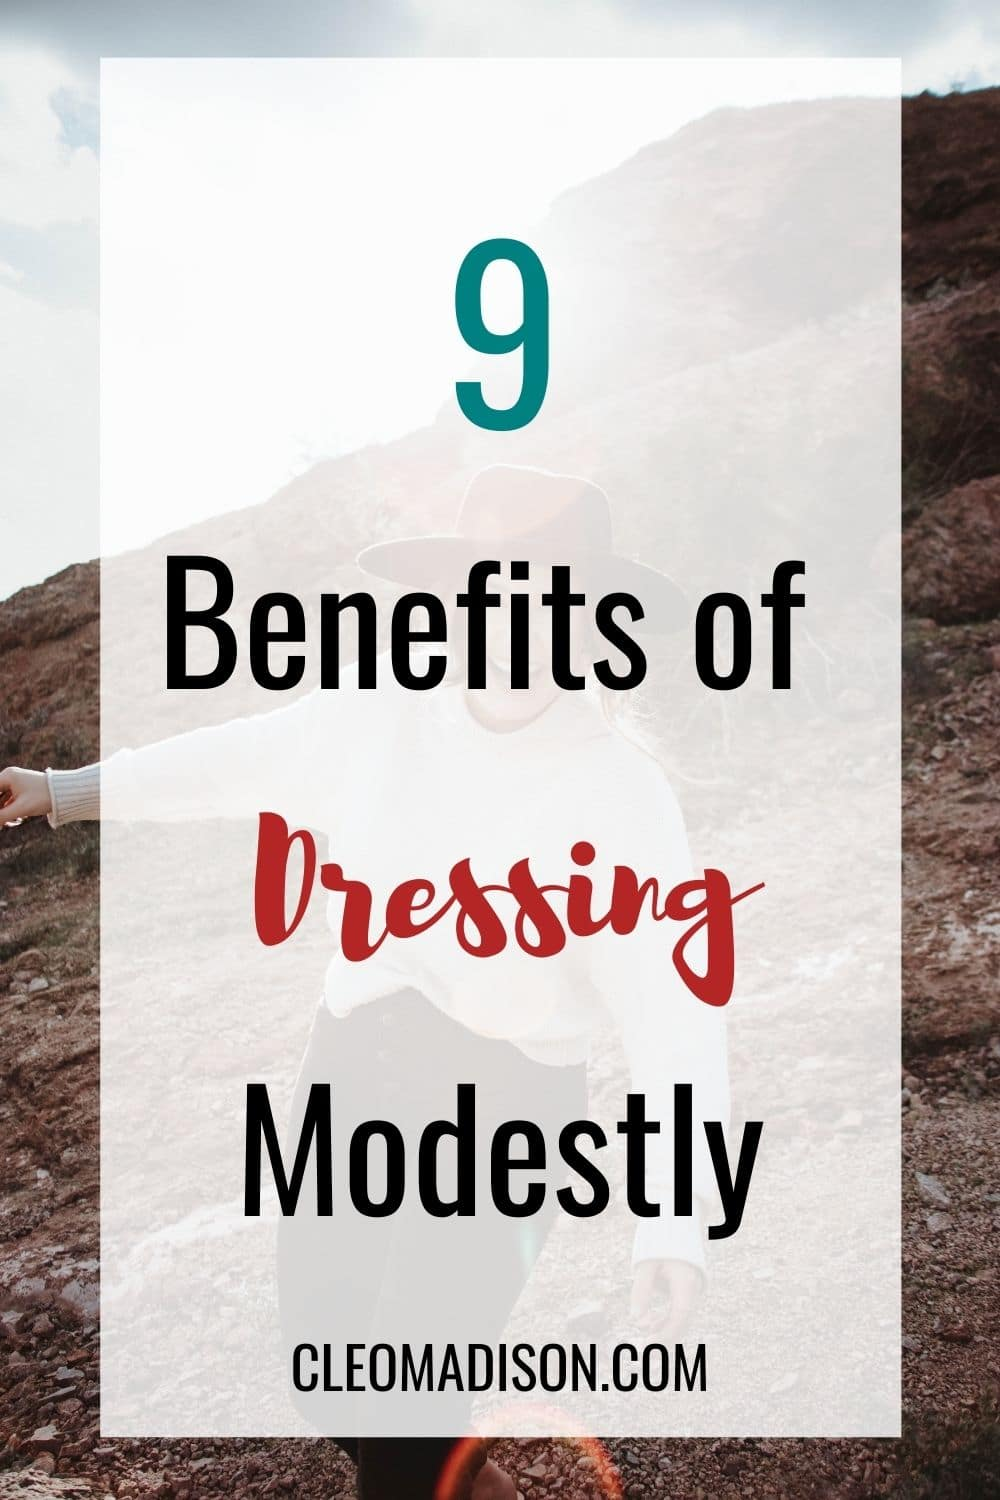 benefits of dressing modestly